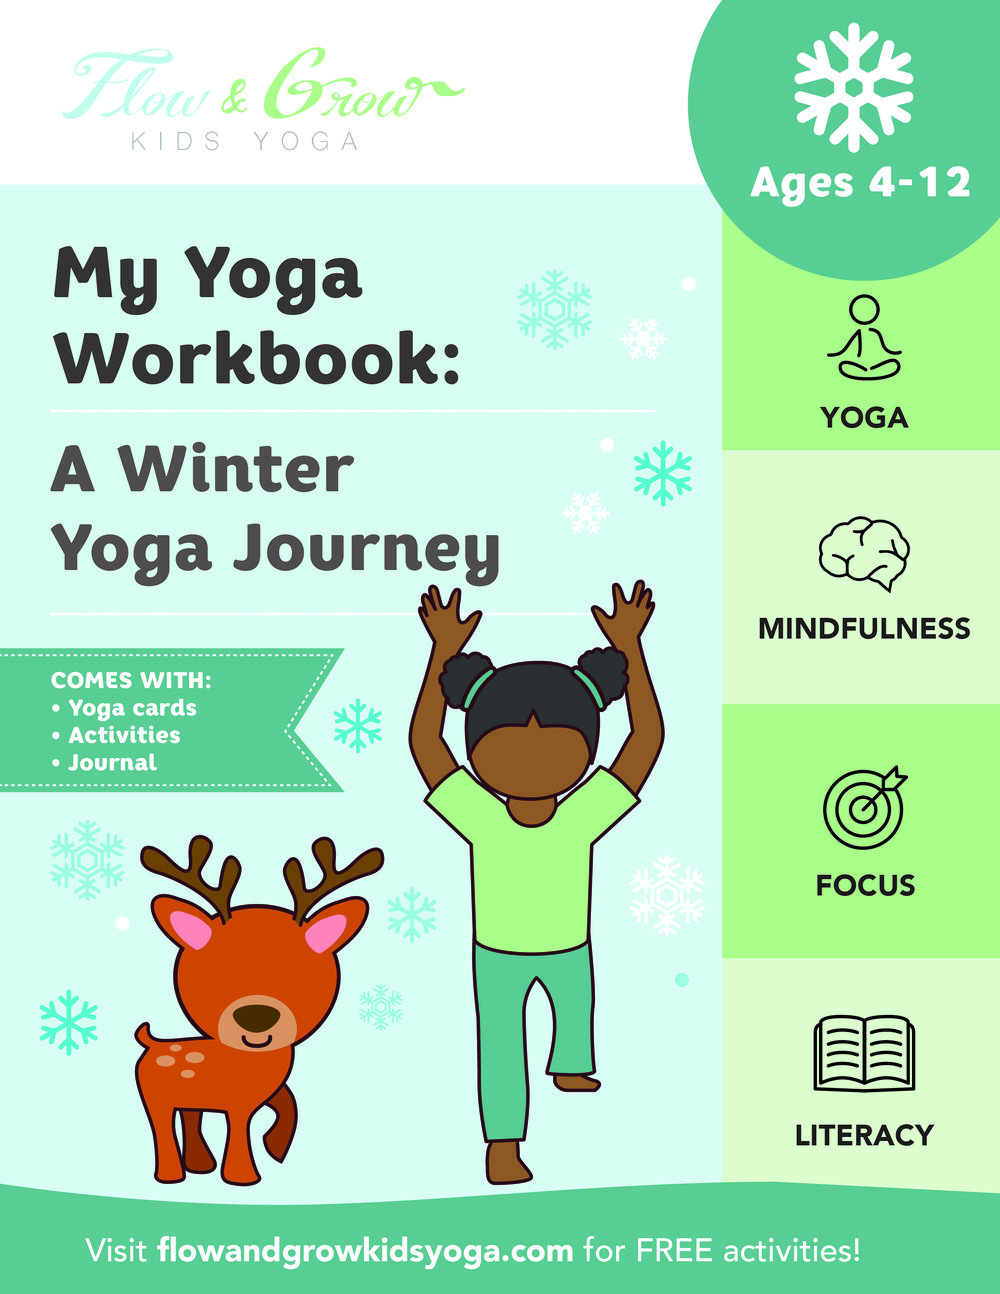 The Cover of  My Yoga WorkBook: A Winter Yoga Journey